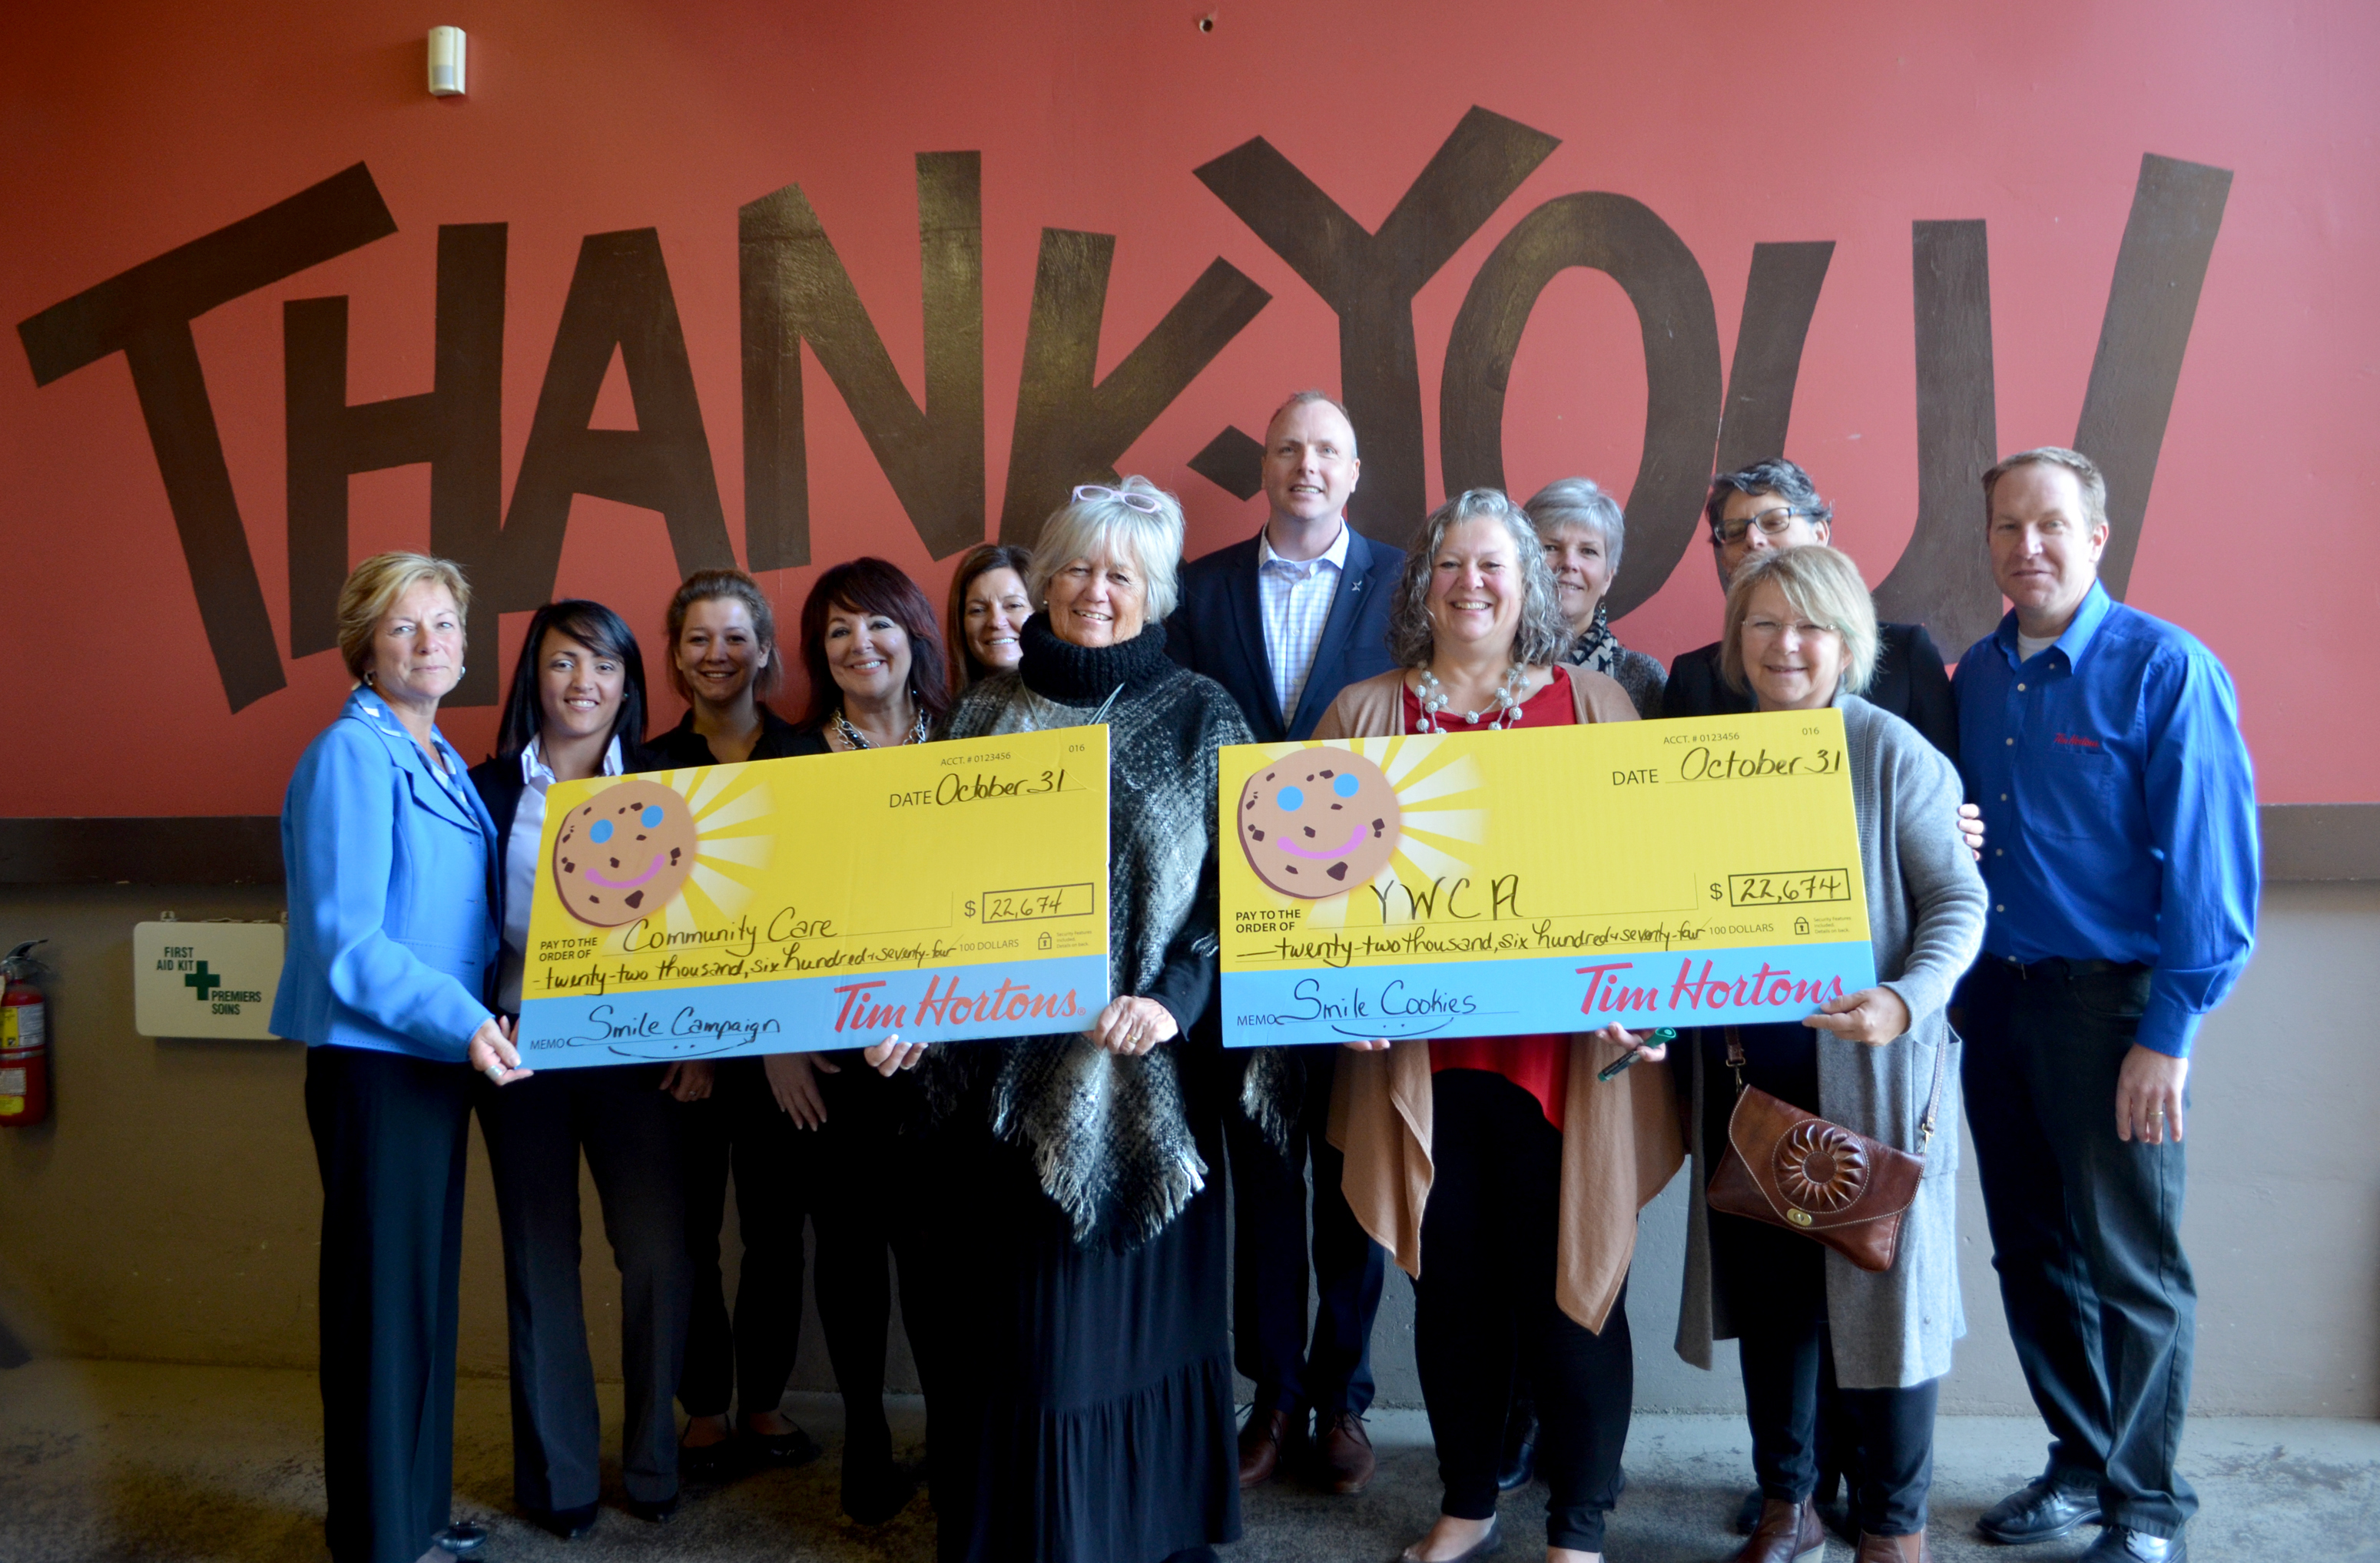 Tim Horton Franchise owners presenting the cheque for the proceeds from the Smile Cookie Campaign. Receiving the cheque are board members from both charities; CEO Betty Lou Souter of Community Care; Executive Director Elisabeth Zimmerman from the YWCA; Laura Byers, Fund Development Officer, Community Care; Nicki Inch, Fund Developer, YWCA.